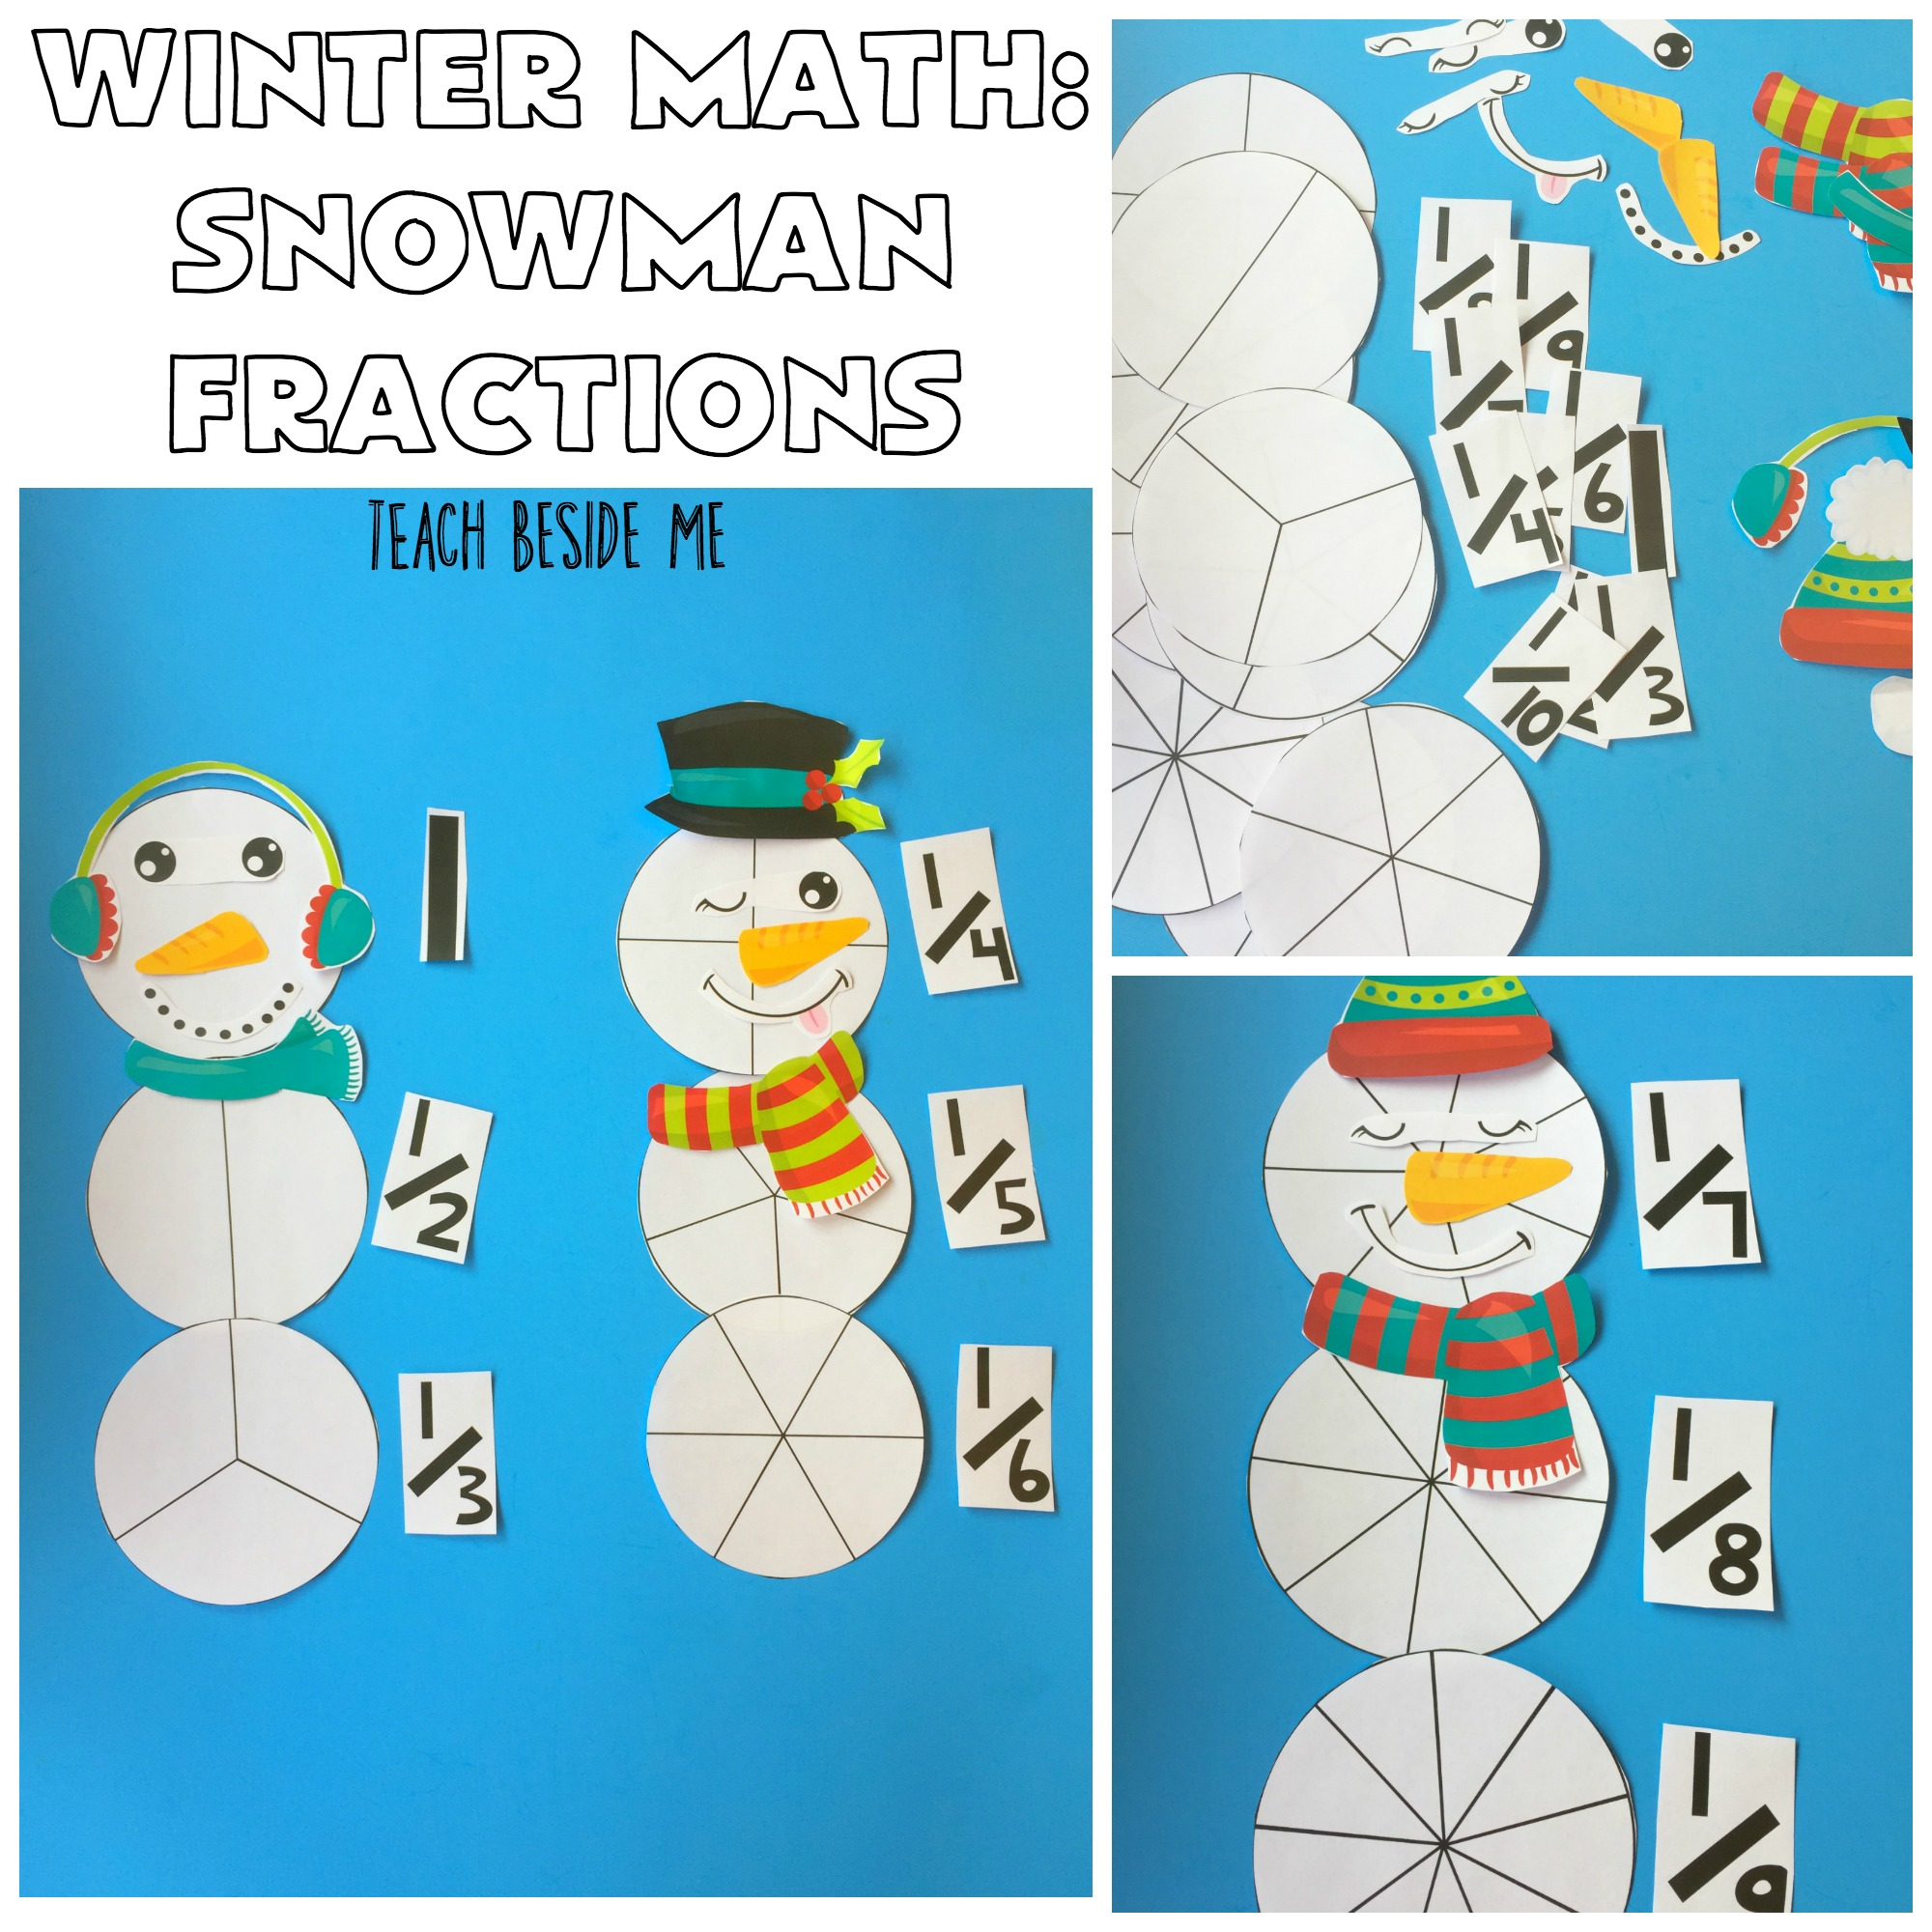 Winter Math: Snowman Fractions